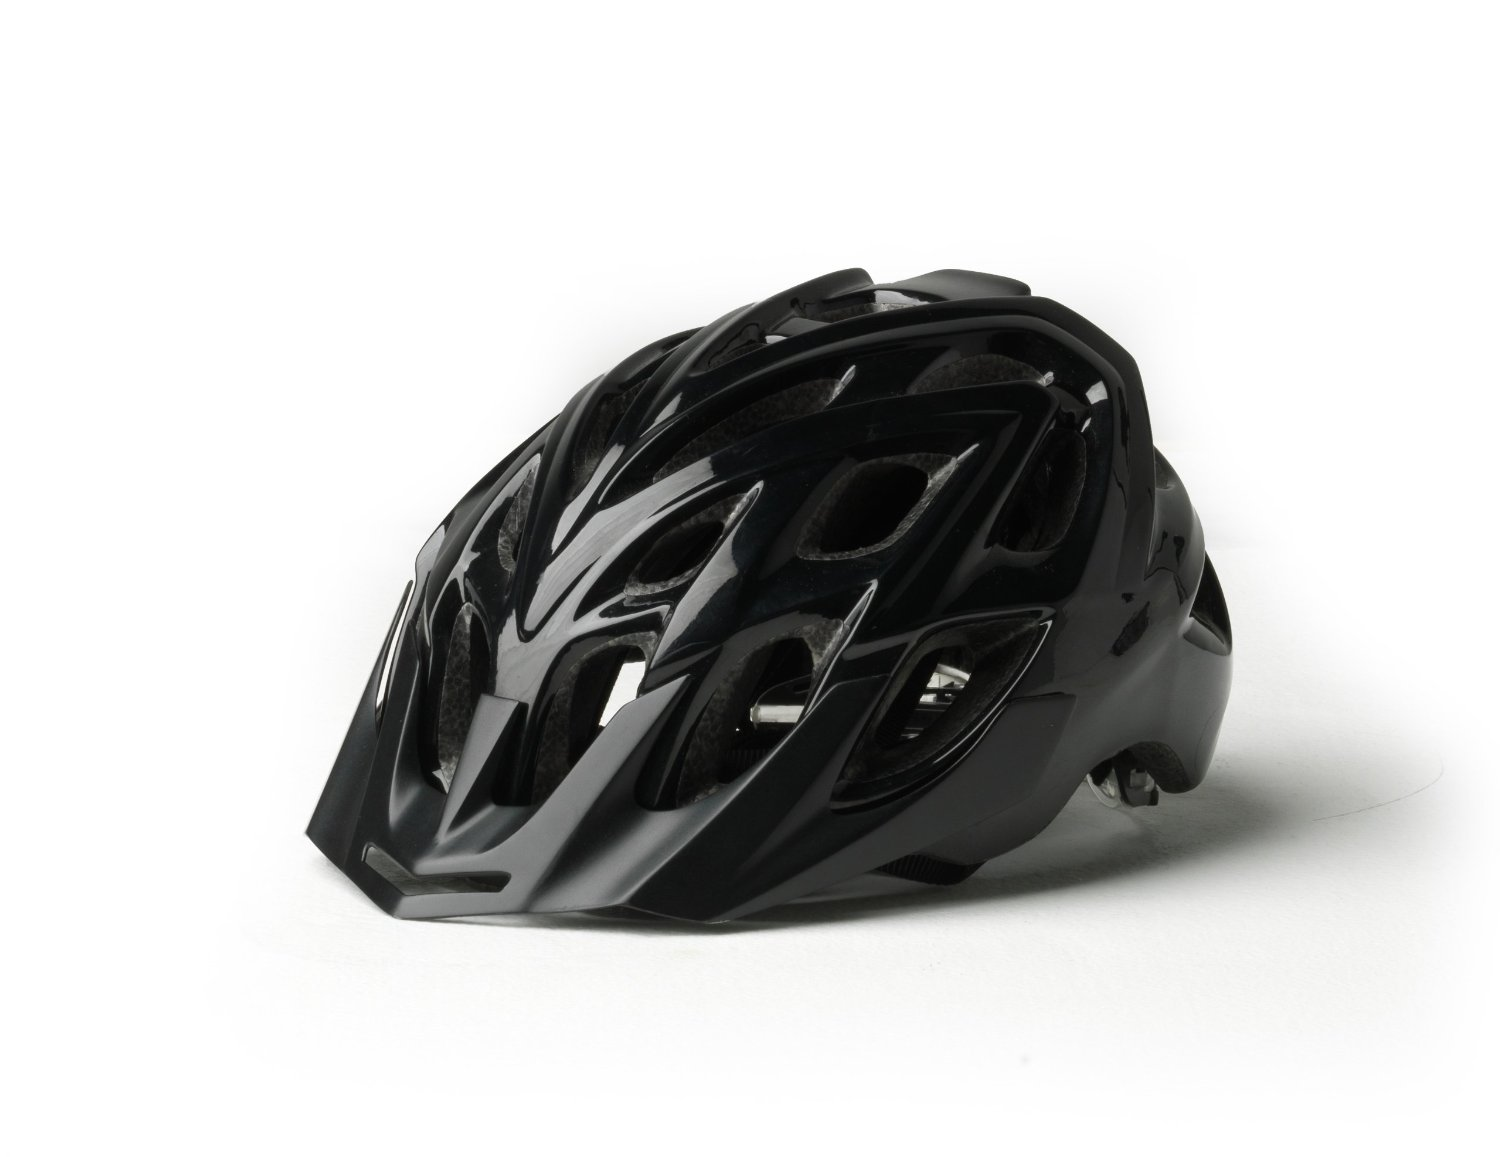 Black Kali Protectives Bicycle Helmets